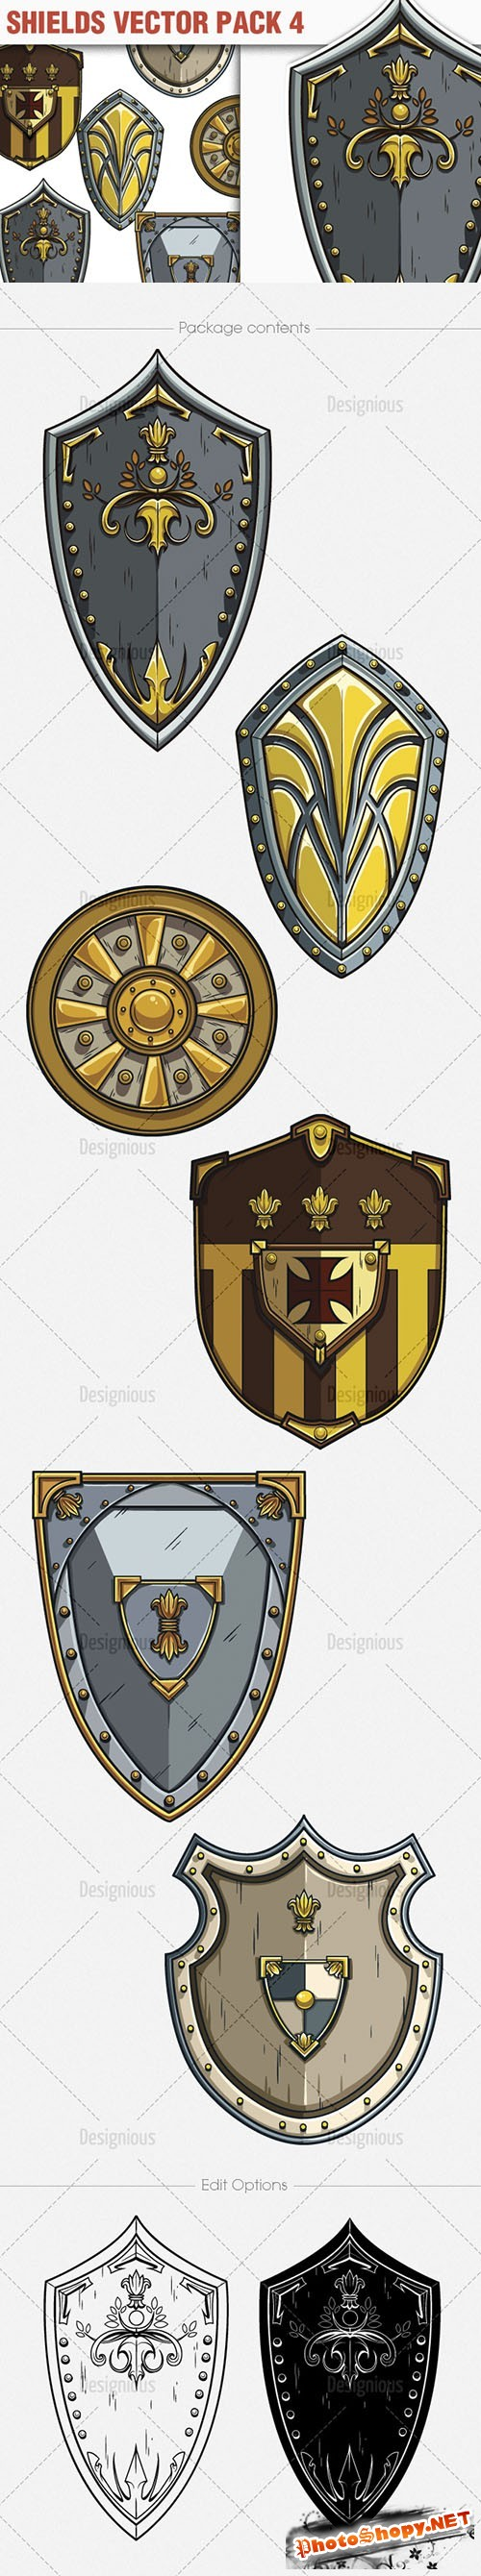 Shields Vector Illustrations Pack 4